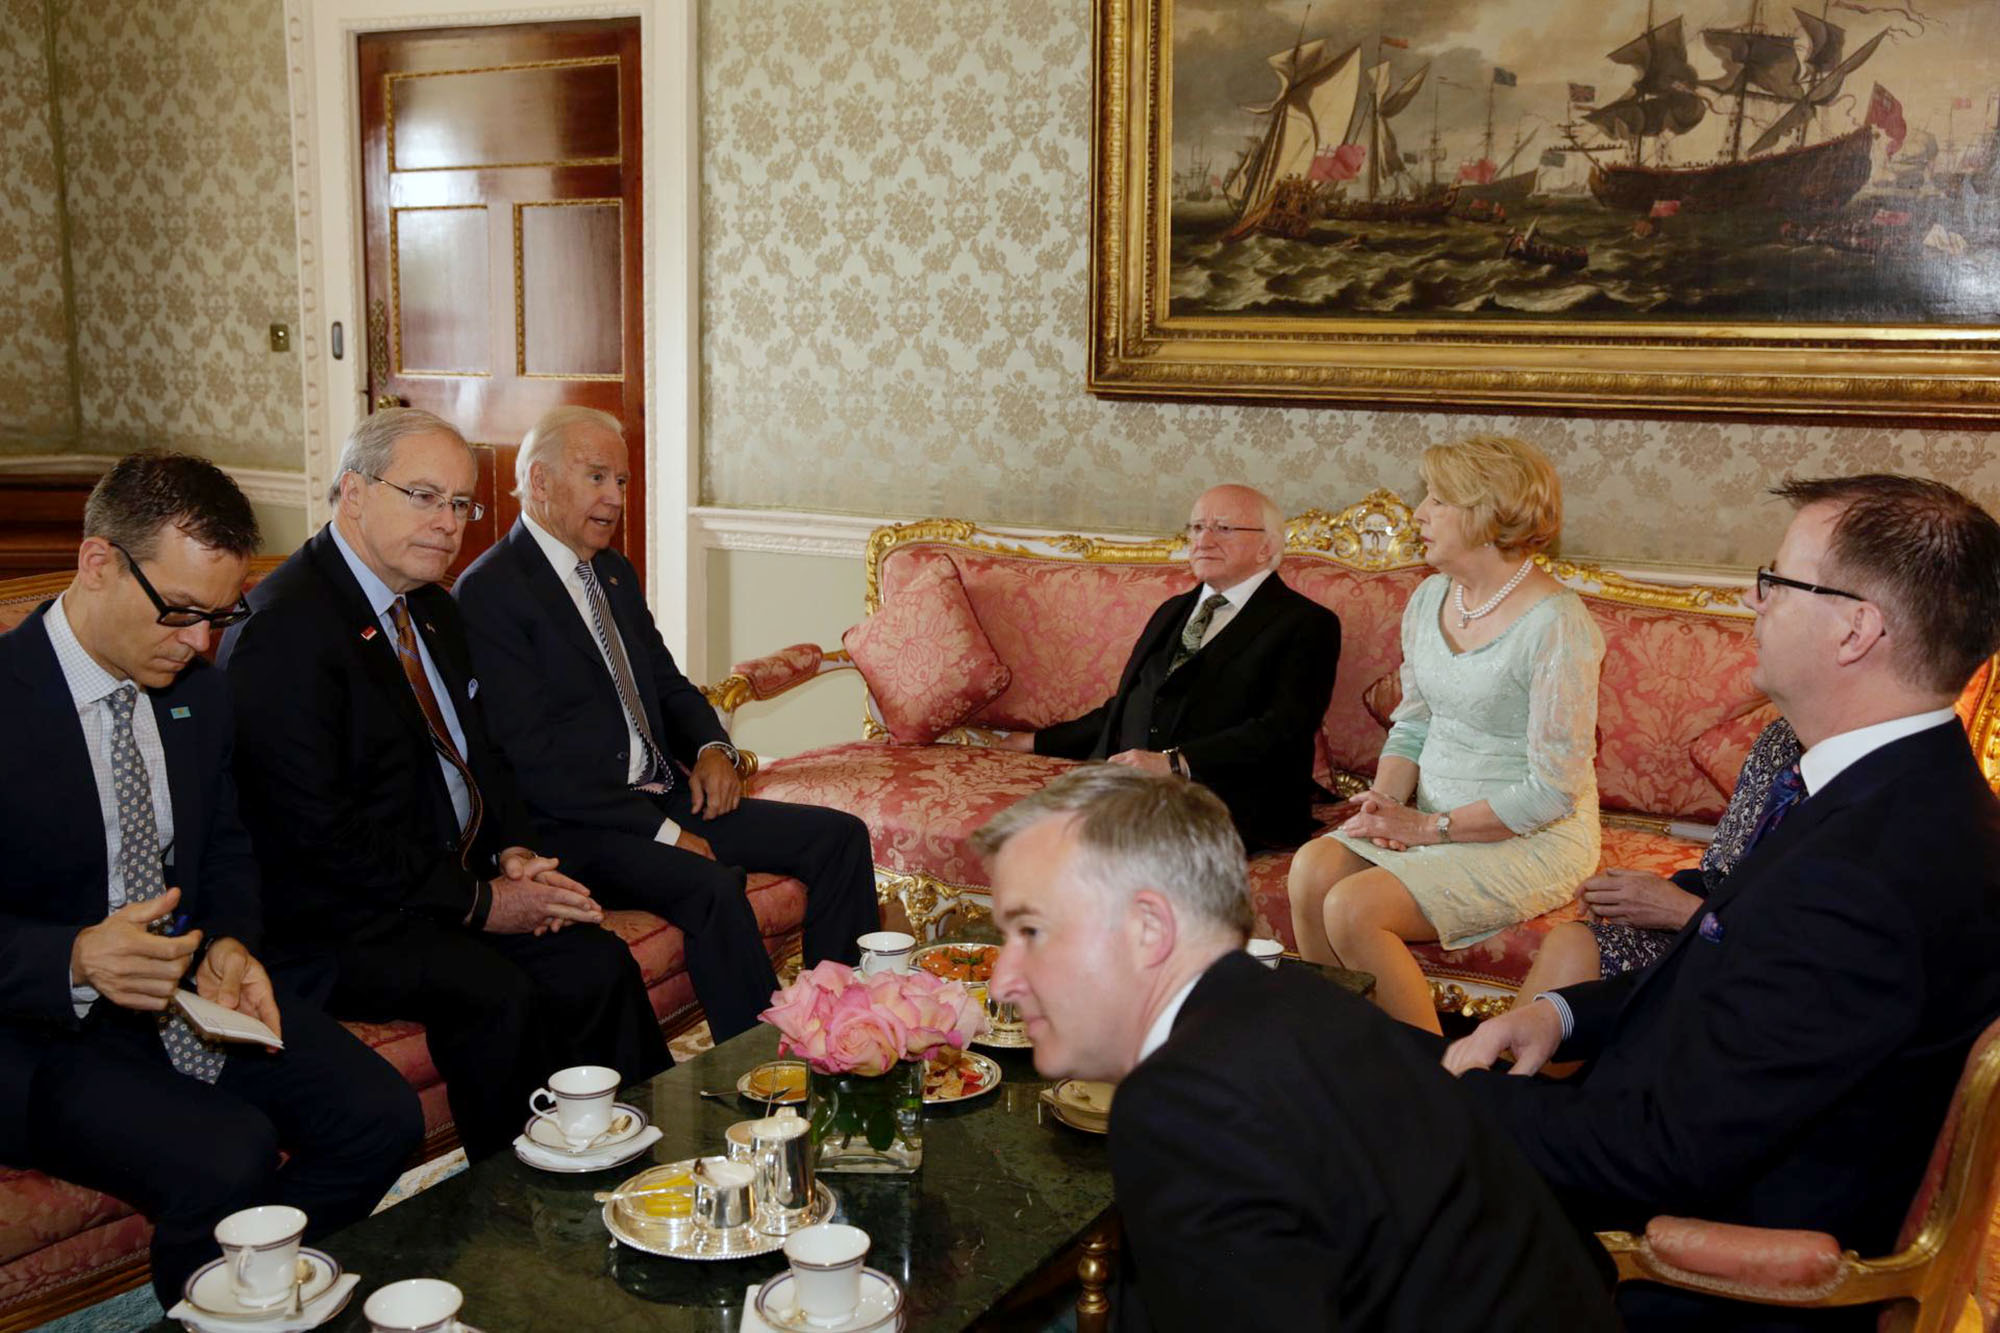 Vice President Joe Biden attends a bilateral meeting with President Michael Higgins at the President's Residence in Dublin, Ireland, June 22, 2016. Also in attendance are U.S. Amb. to Ireland Kevin O'Malley, Colin Kahl, Mrs. Sabina Higgins, Ireland Amb. to the U.S. Anne Anderson; Art O'Leary, Secretary General to the President; Liam Herrick, Adviser to the President. (Official White House Photo by David Lienemann)